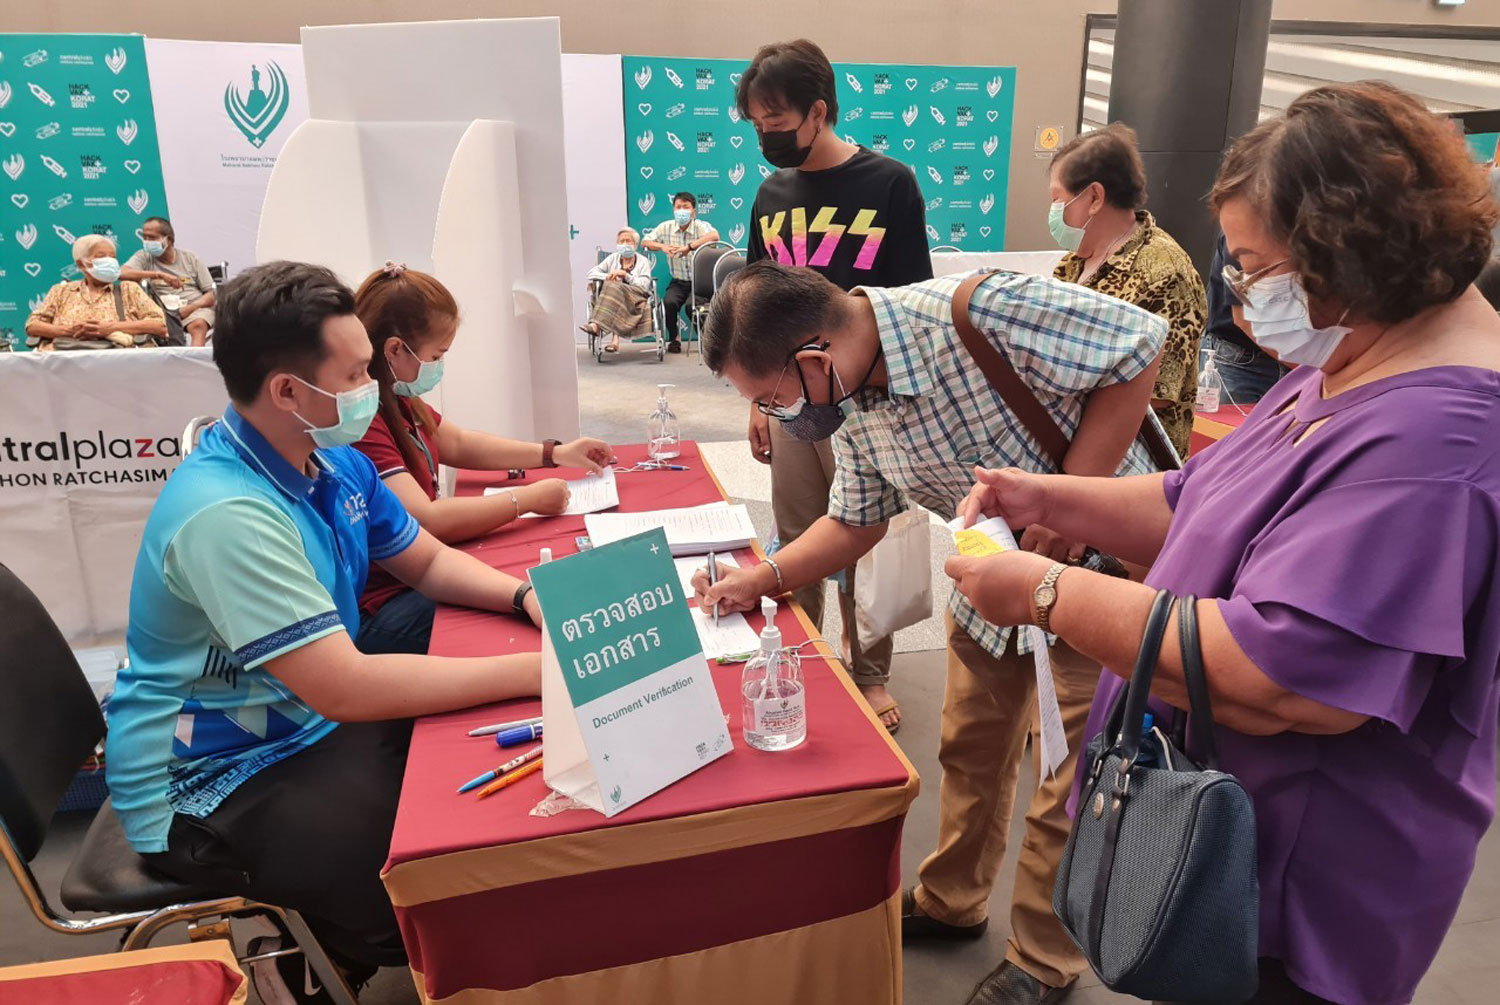 People register for Covid-19 vaccination at CentralPlaza Nakhon Ratchasima. Another 71 infections were reported in the province on Friday. (Photo: Prasit Tangprasert)